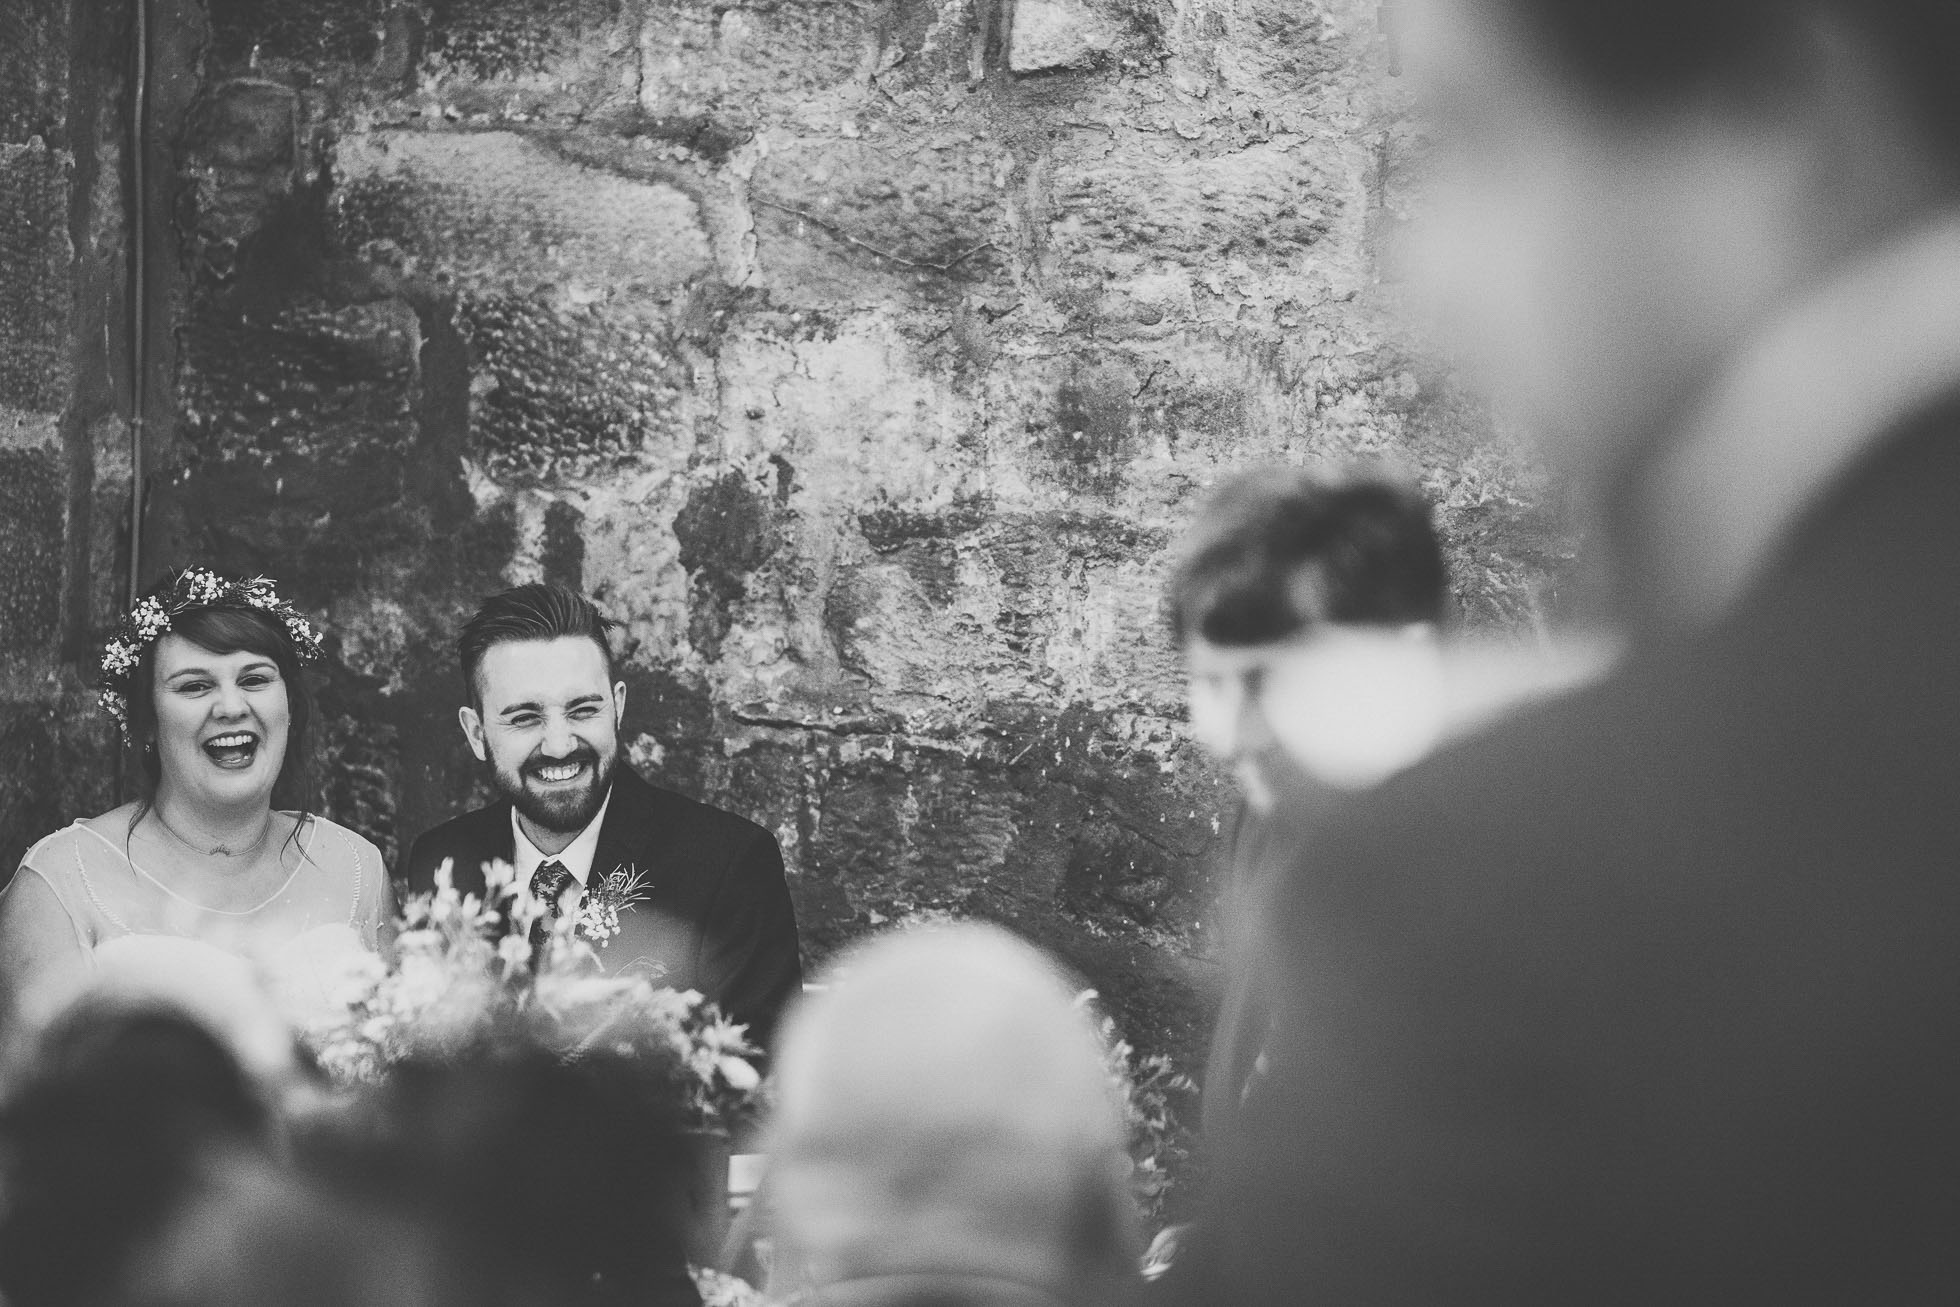 danby_castle_wedding_photographer-47.jpg